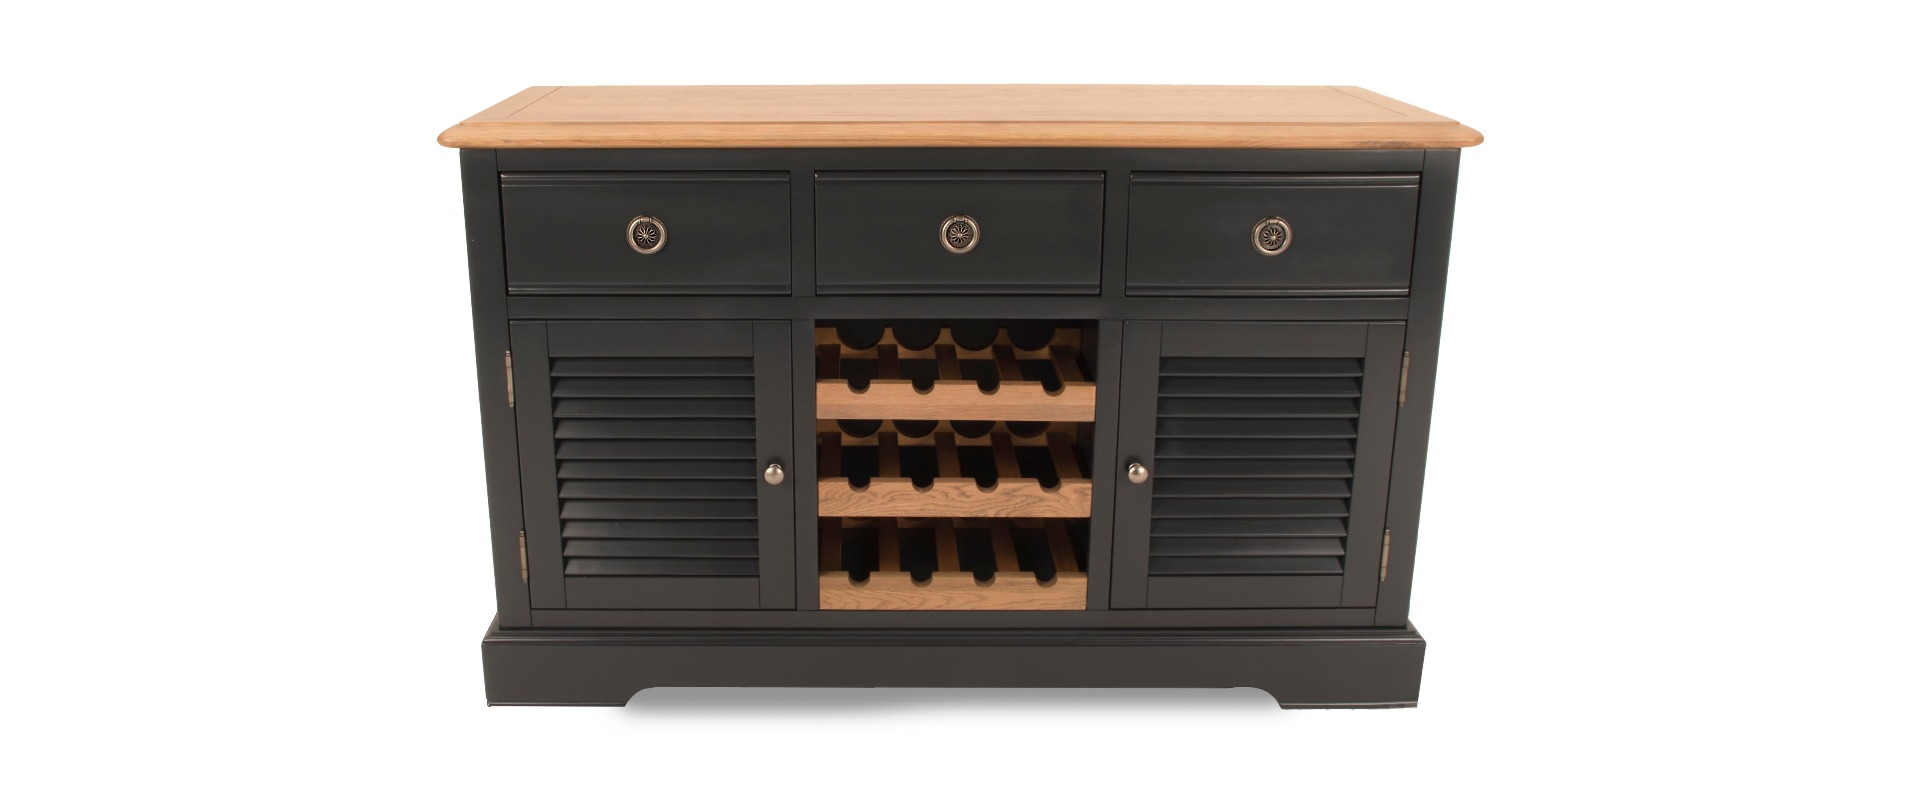 Charlotte Charcoal Large Sideboard